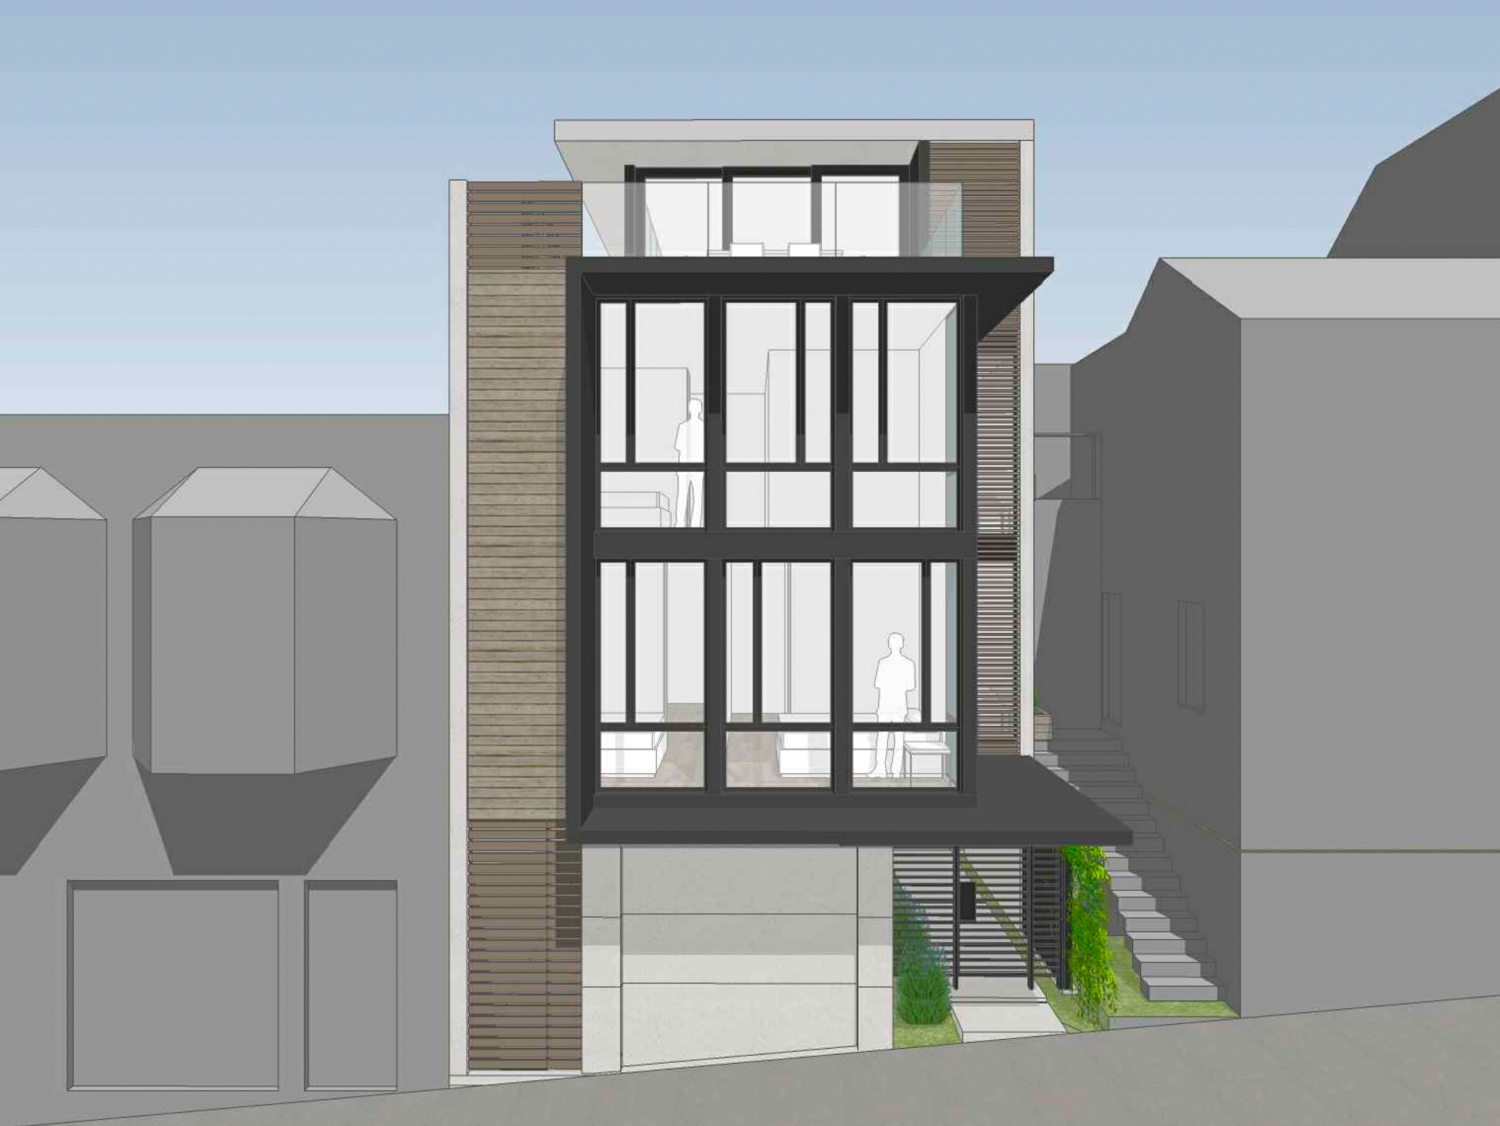 575 Vermont Street head-on view, design by Timbre Architecture